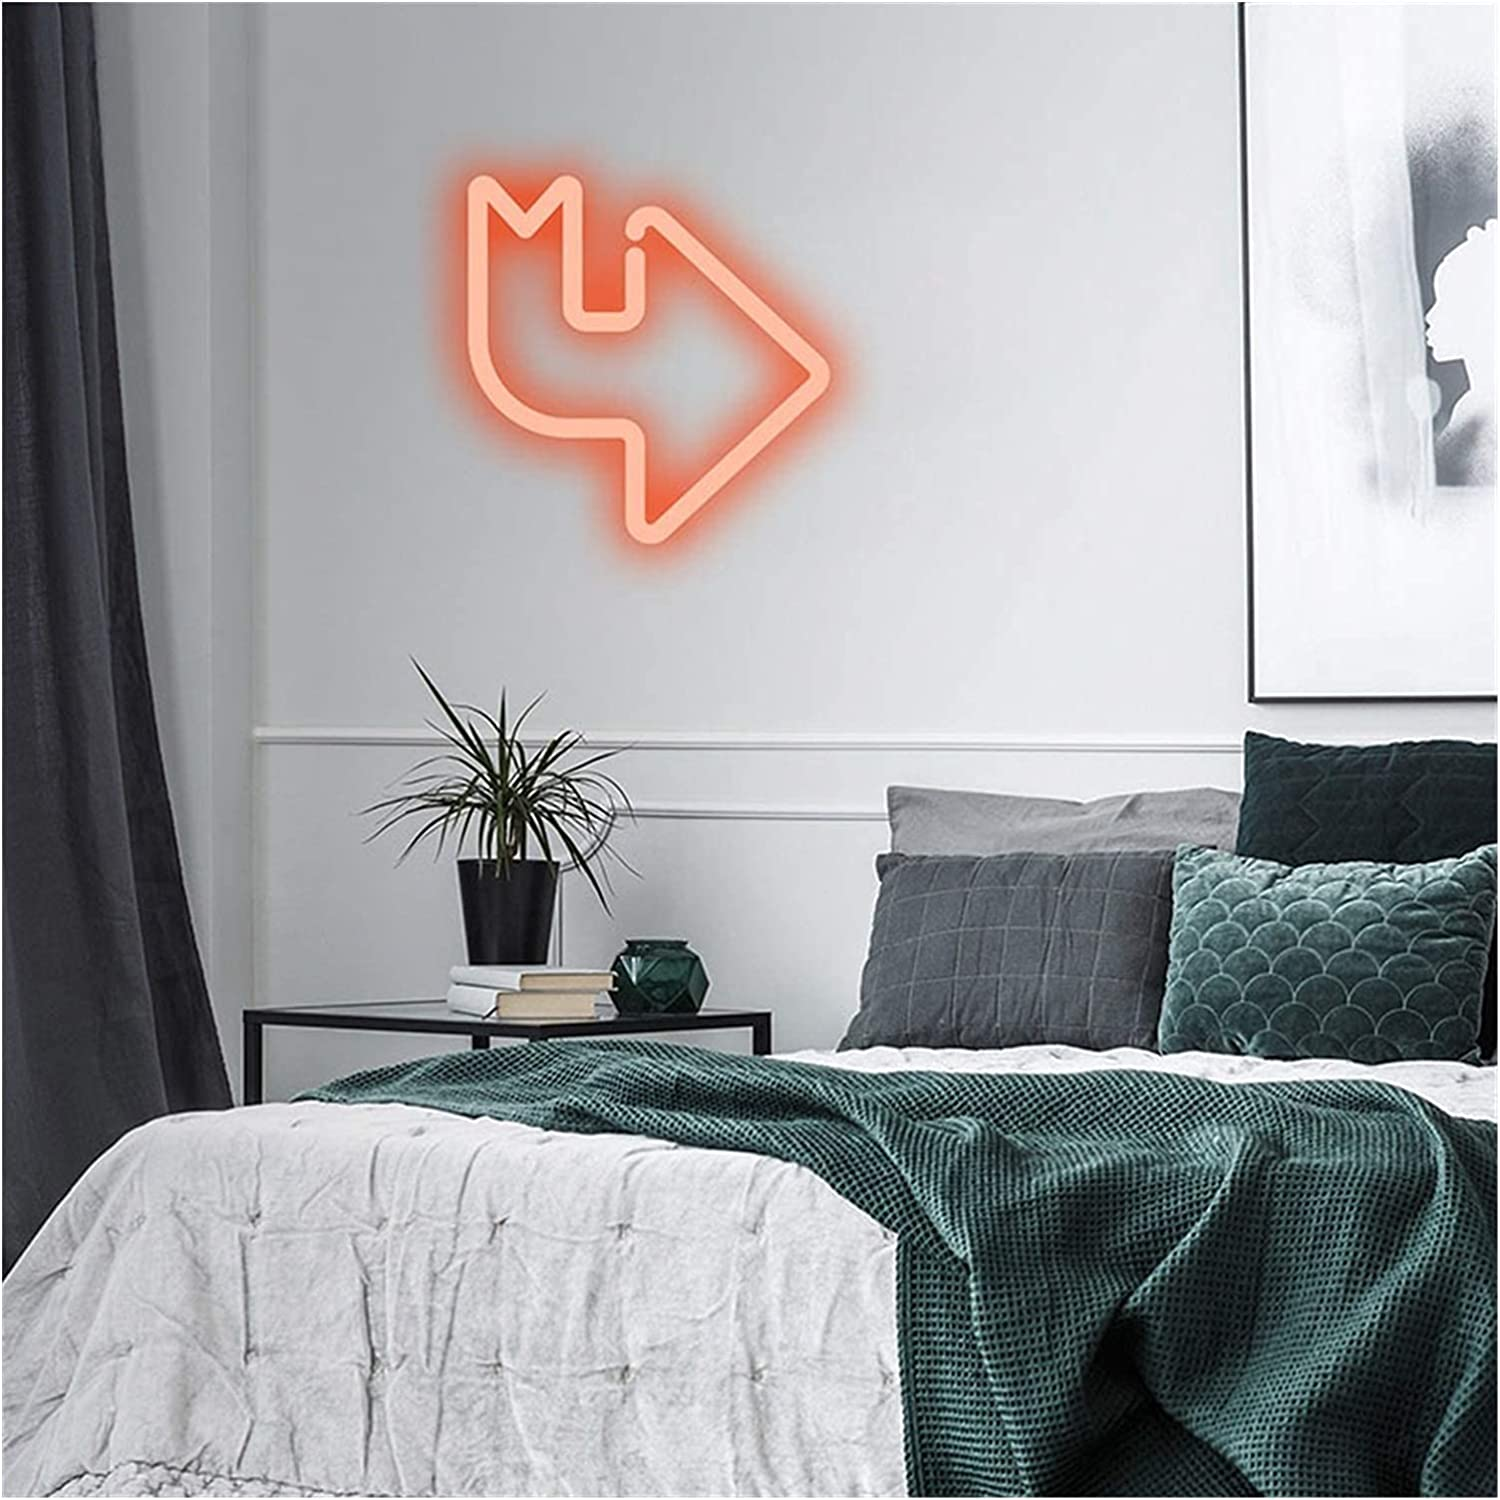 Custom Neon Signs 12V Personalized Max 64% OFF Light Sign Hangings Bombing free shipping Wall